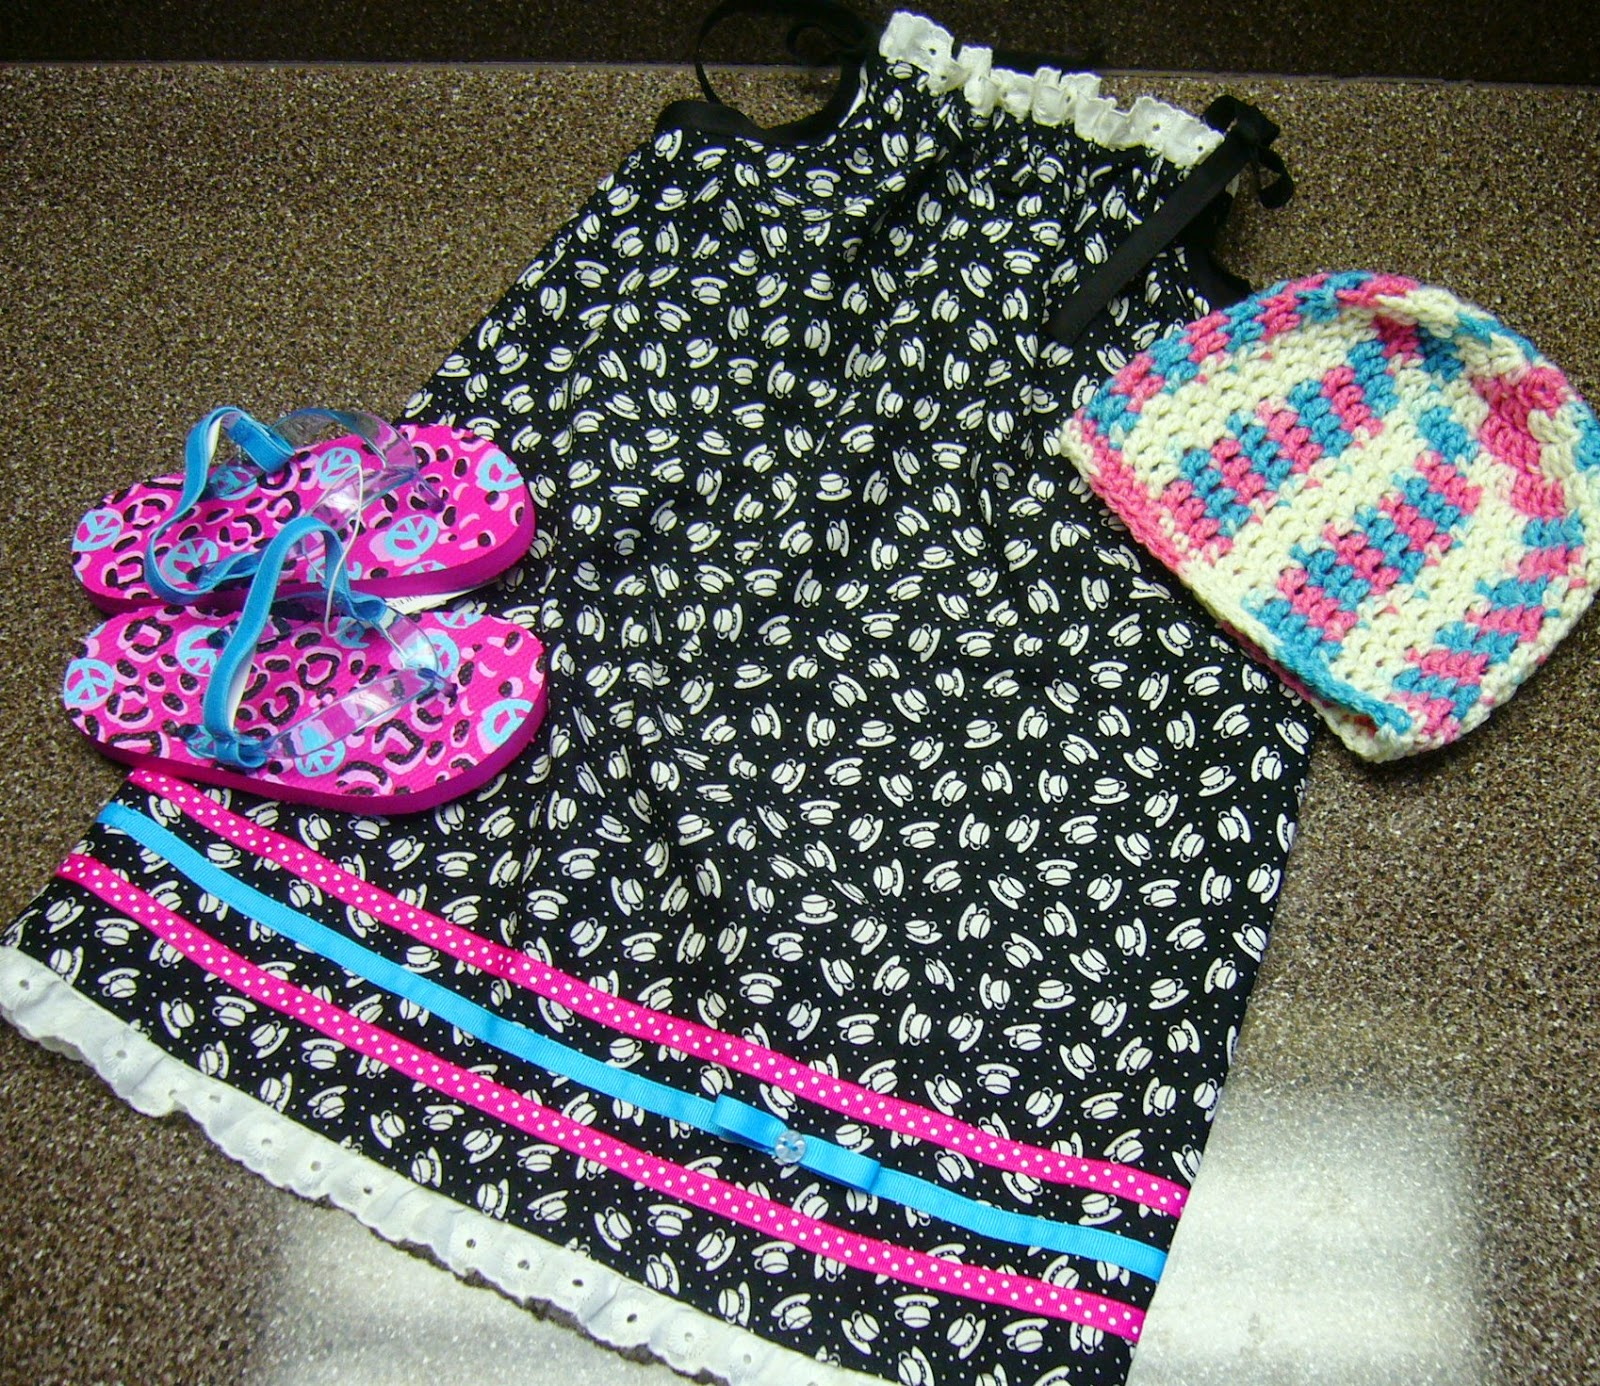 Dress, hat and flip flops for 2 to 4 year old girl Operation Christmas Child shoebox.